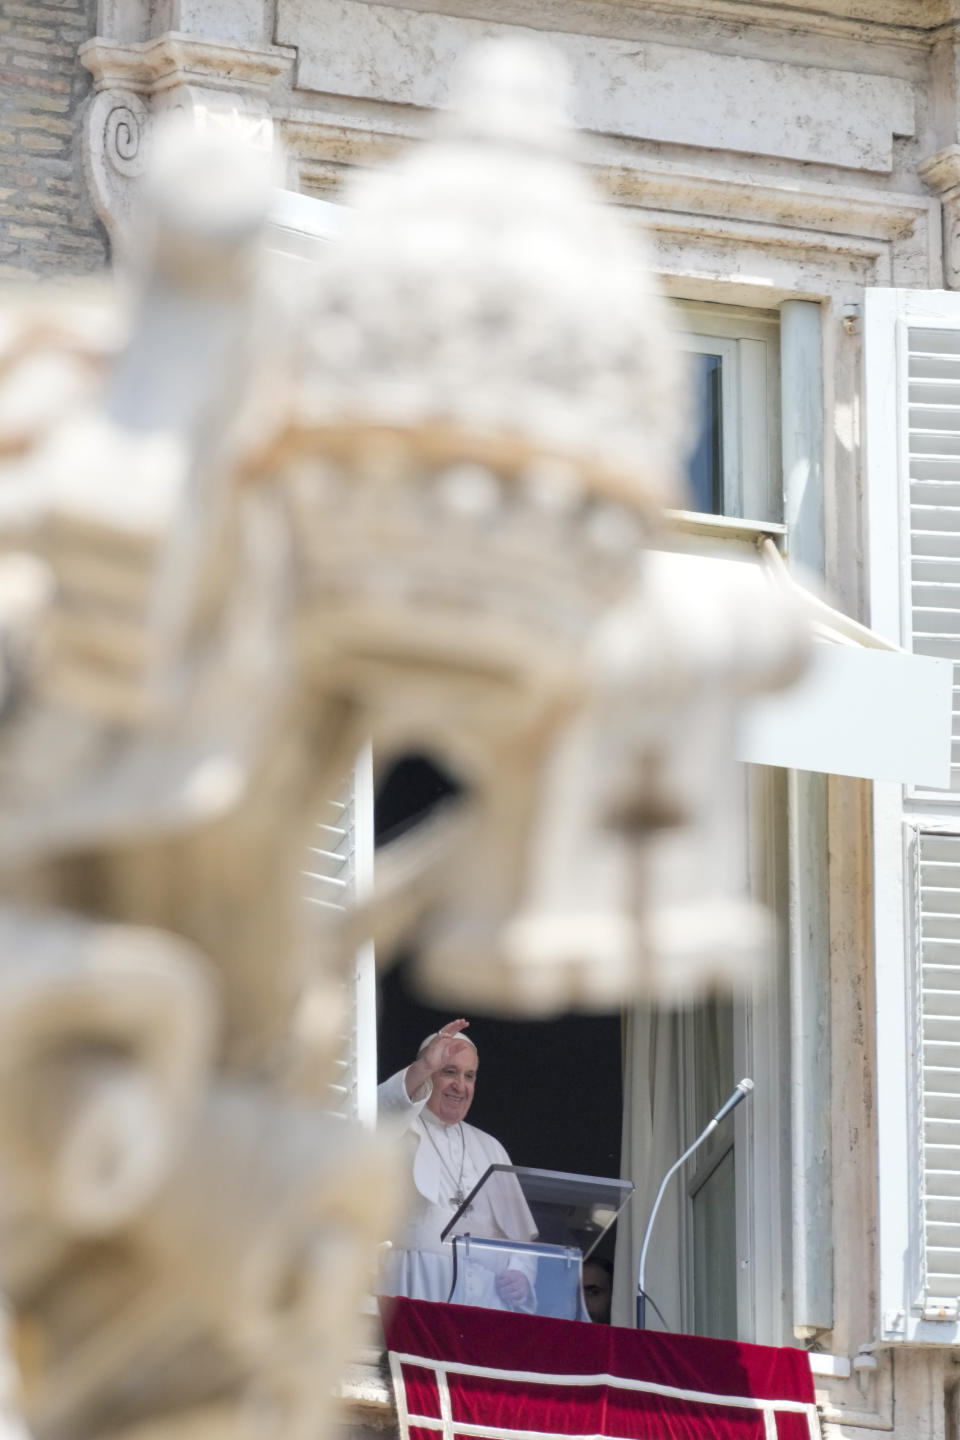 Pope Francis delivers his blessing during the Angelus noon prayer from the window of his studio overlooking St.Peter's Square, at the Vatican, Sunday, June 13, 2021. Francis demanded during his speech for humanitarian aid to reach residents of the war-torn Tigray region of northern Ethiopia, where Ethiopian and Eritrean soldiers are blocking food and other assistance. (AP Photo/Andrew Medichini)